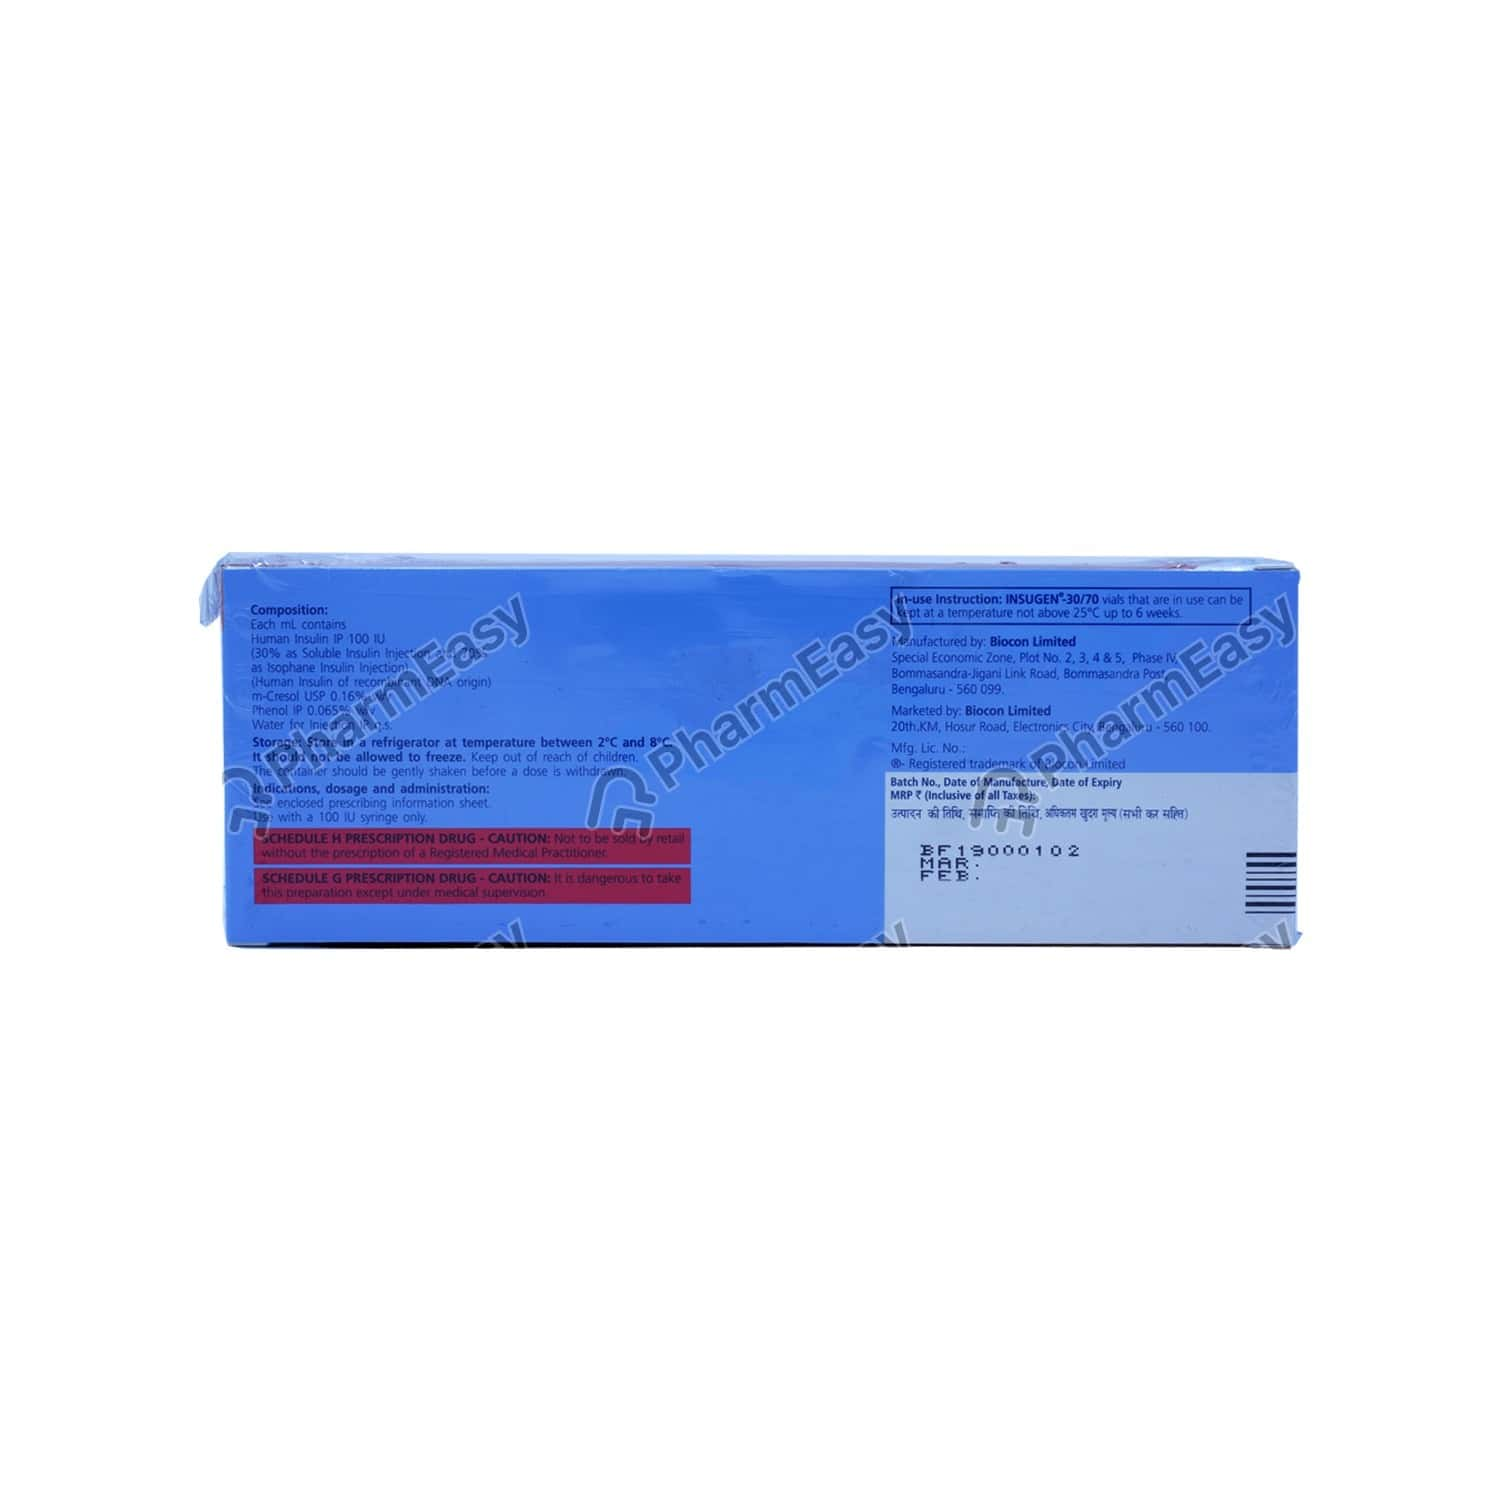 Insugen 30/70 100iu Vial Of 10ml Solution For Injection